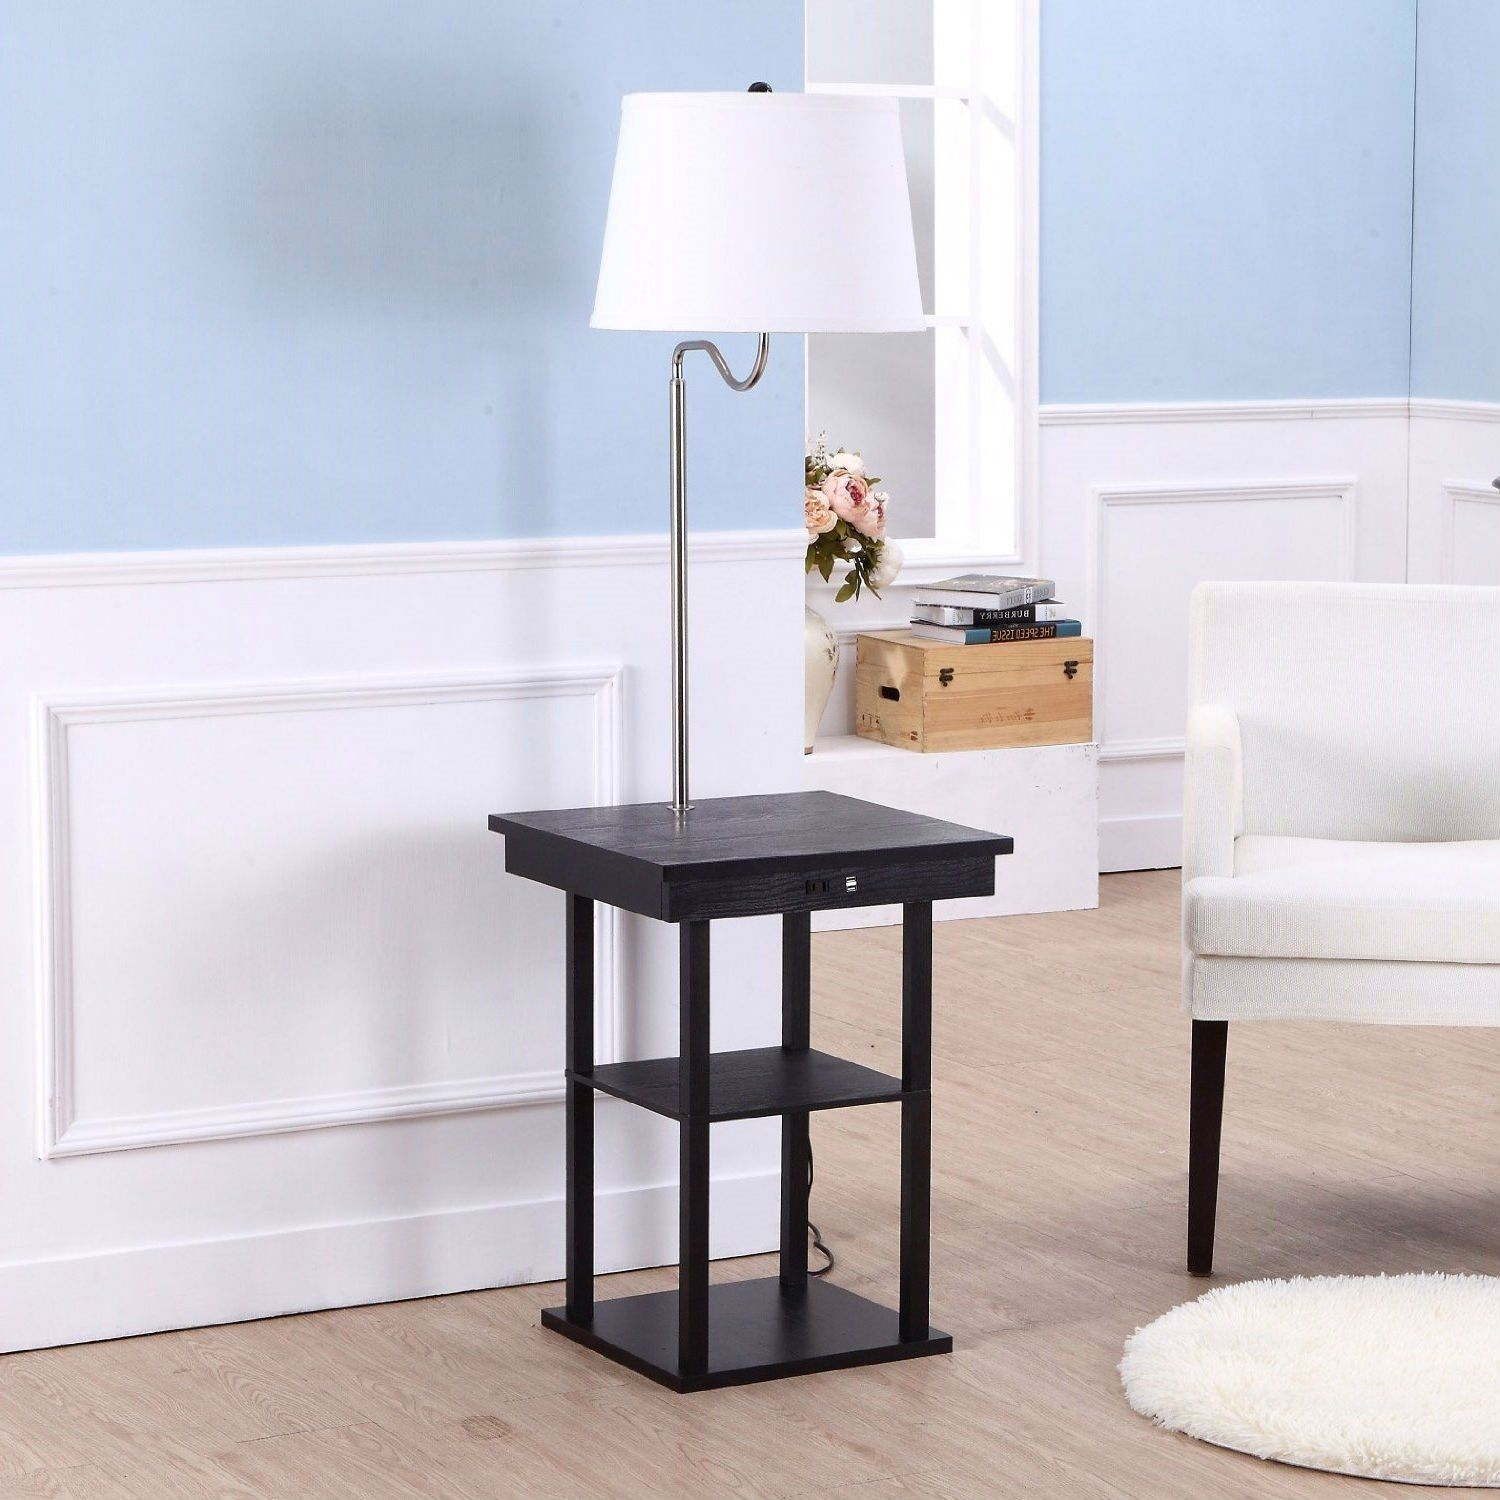 2 In1 Modern Side Table Floor Lamp With White Shade And Usb Ports In 2021 Modern Side Table Floor Lamp Table Column Floor Lamp Side table with built in lamp